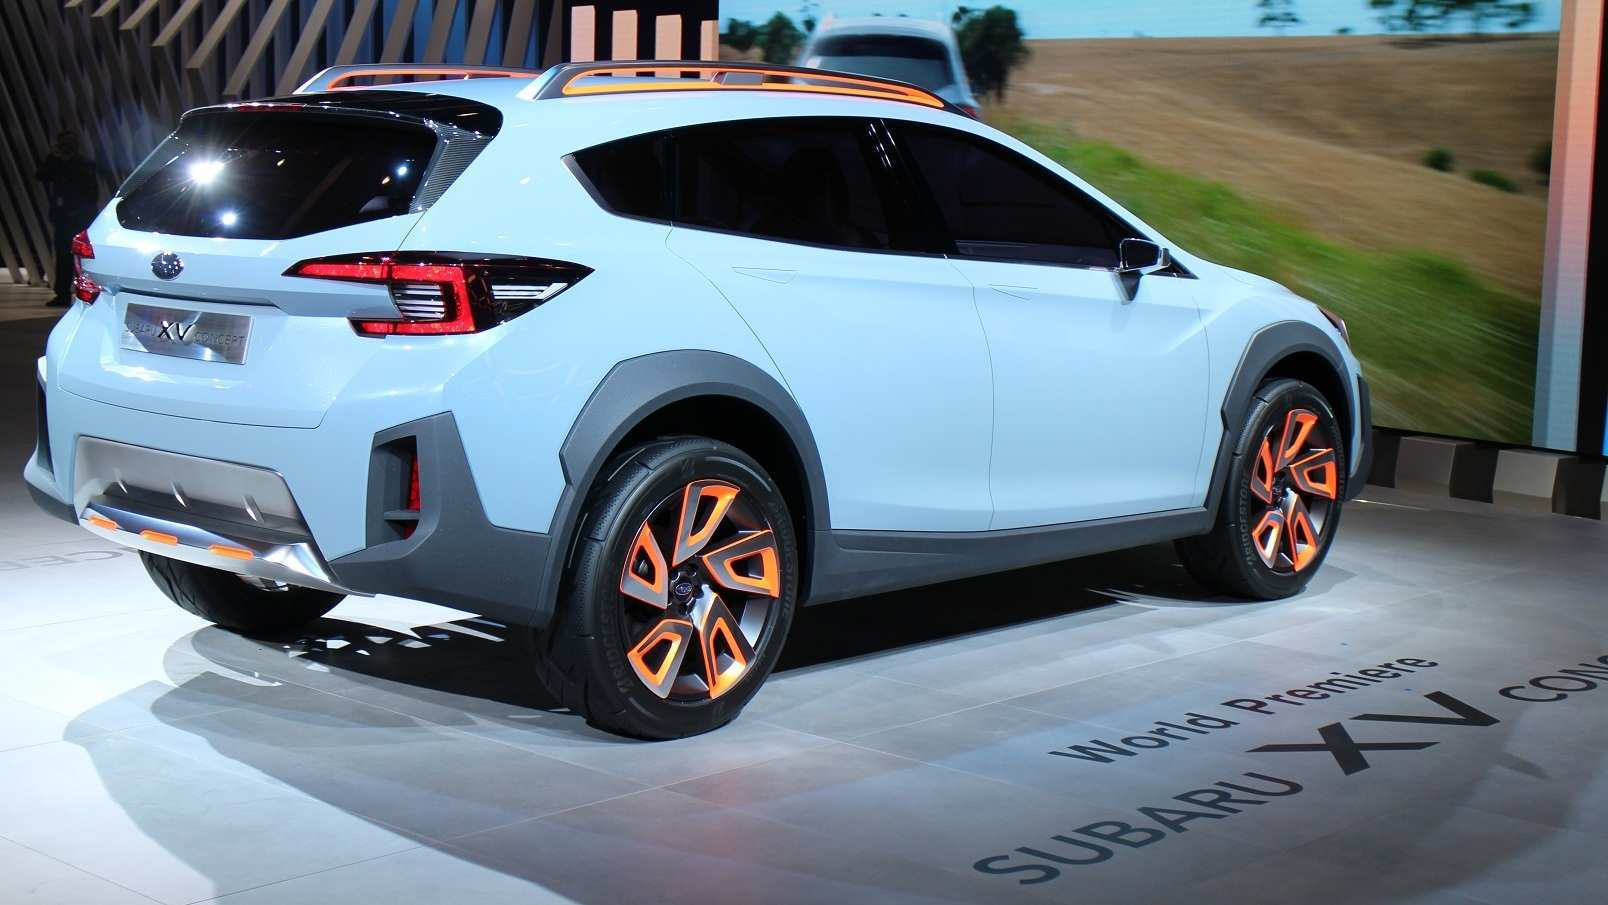 52 Concept of Subaru Xv 2020 New Concept Redesign and Concept by Subaru Xv 2020 New Concept